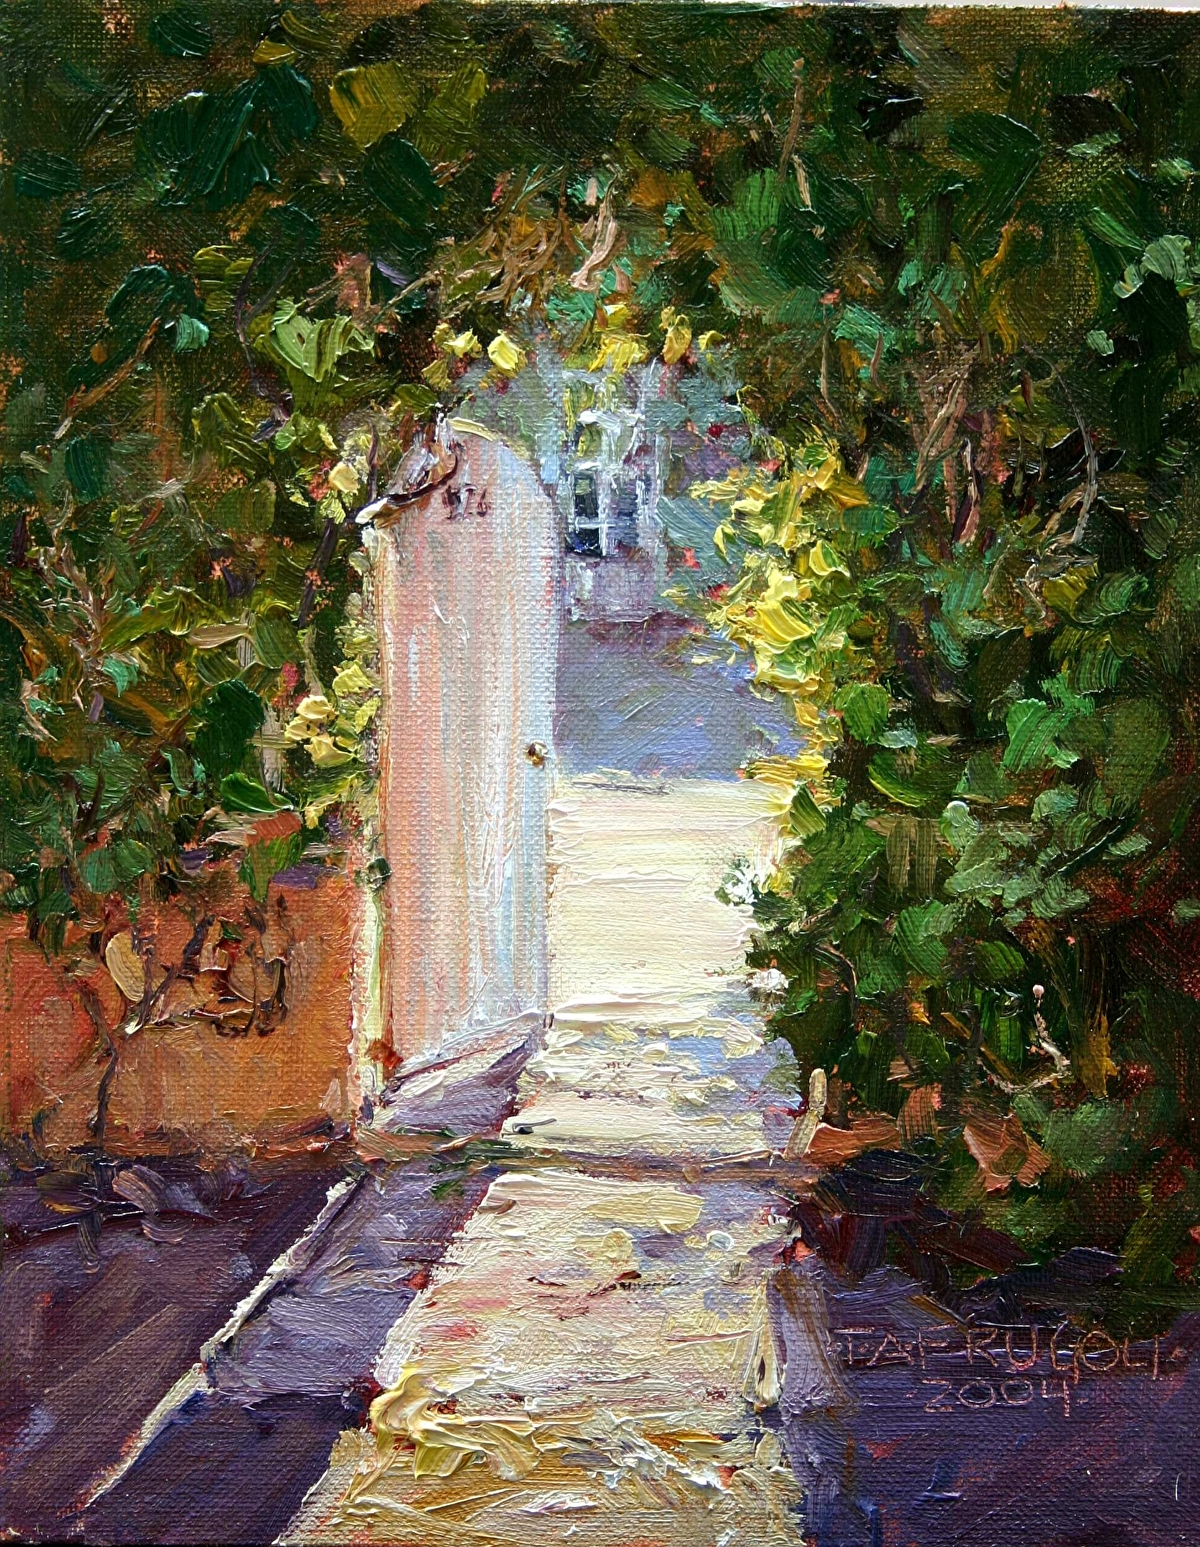 Tracey Frugoli Work Detail Sunlight Through the Garden Door